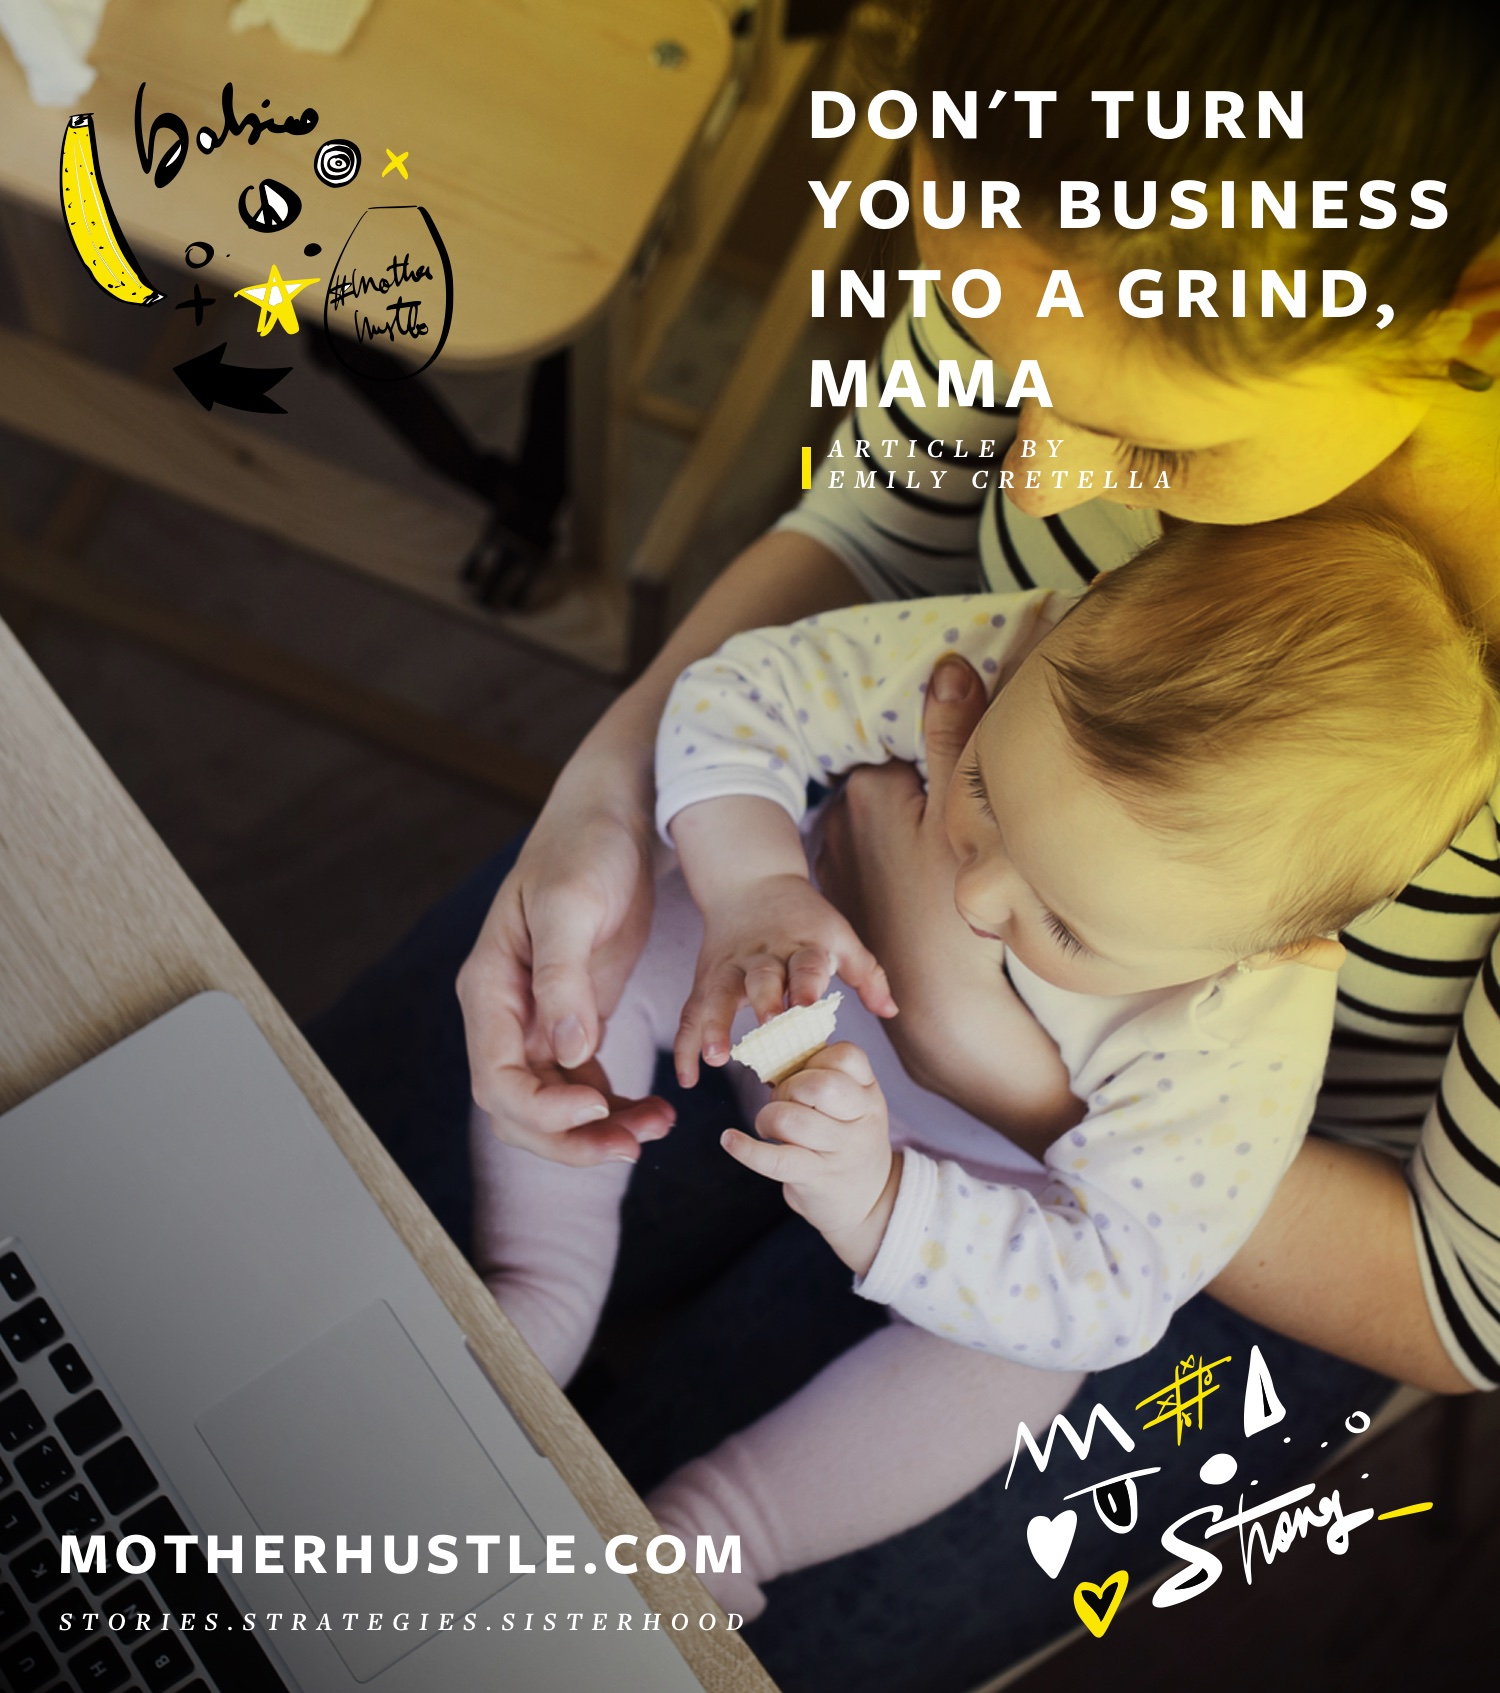 Don't Turn Your Business Into A Grind, Mama - Emily Cretella MotherHustle